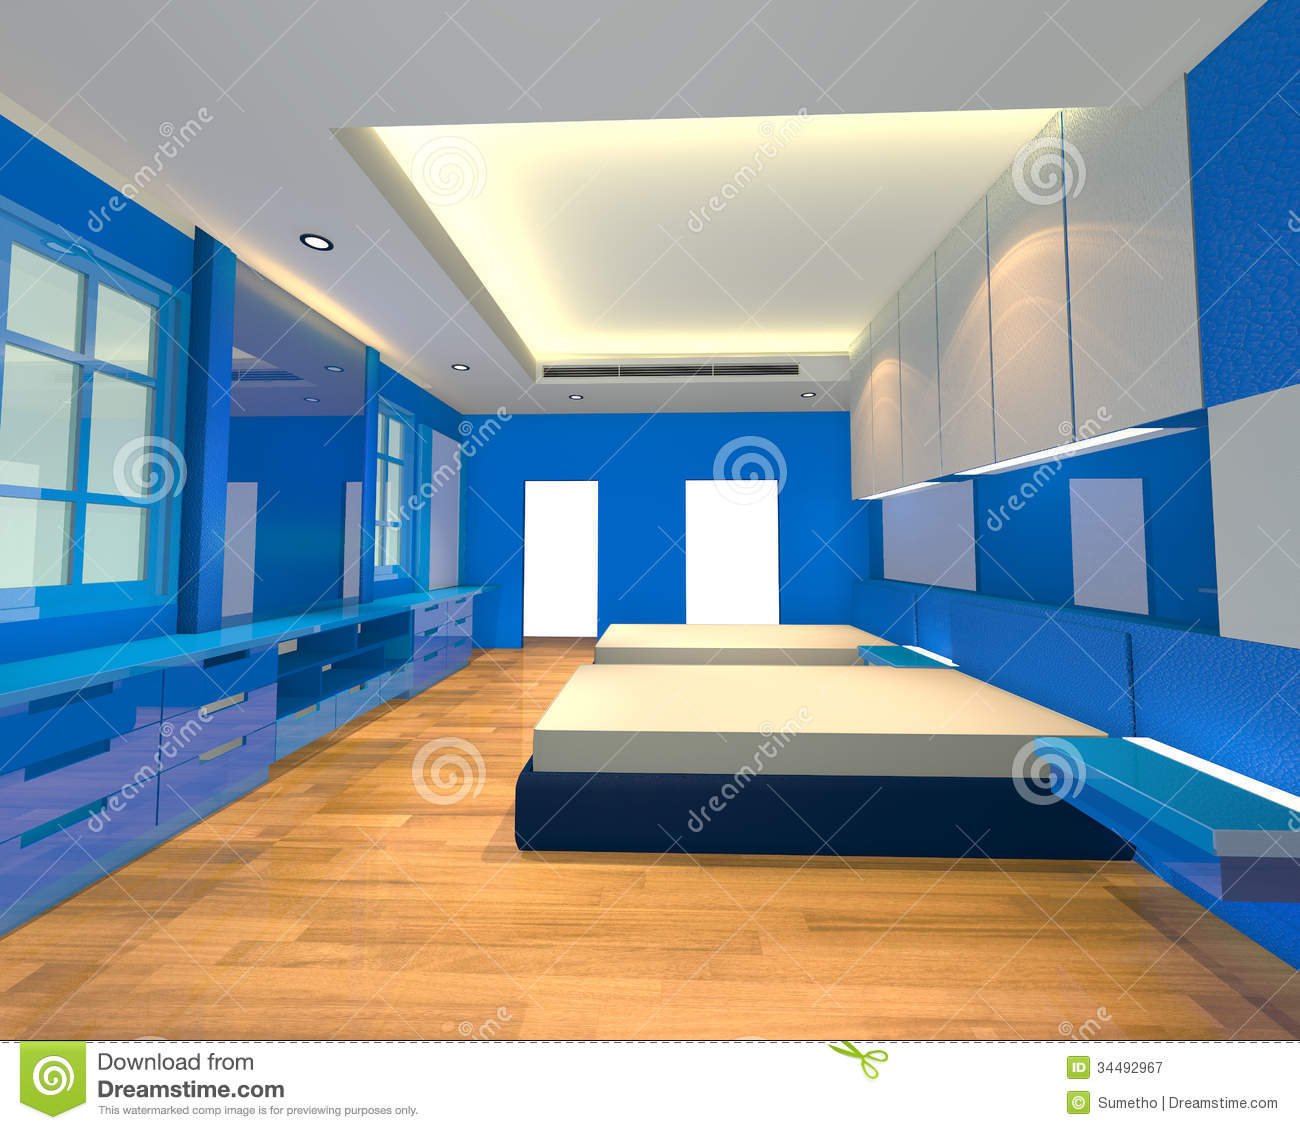 Interior Design Bedroom Blue Theme Royalty Free Stock